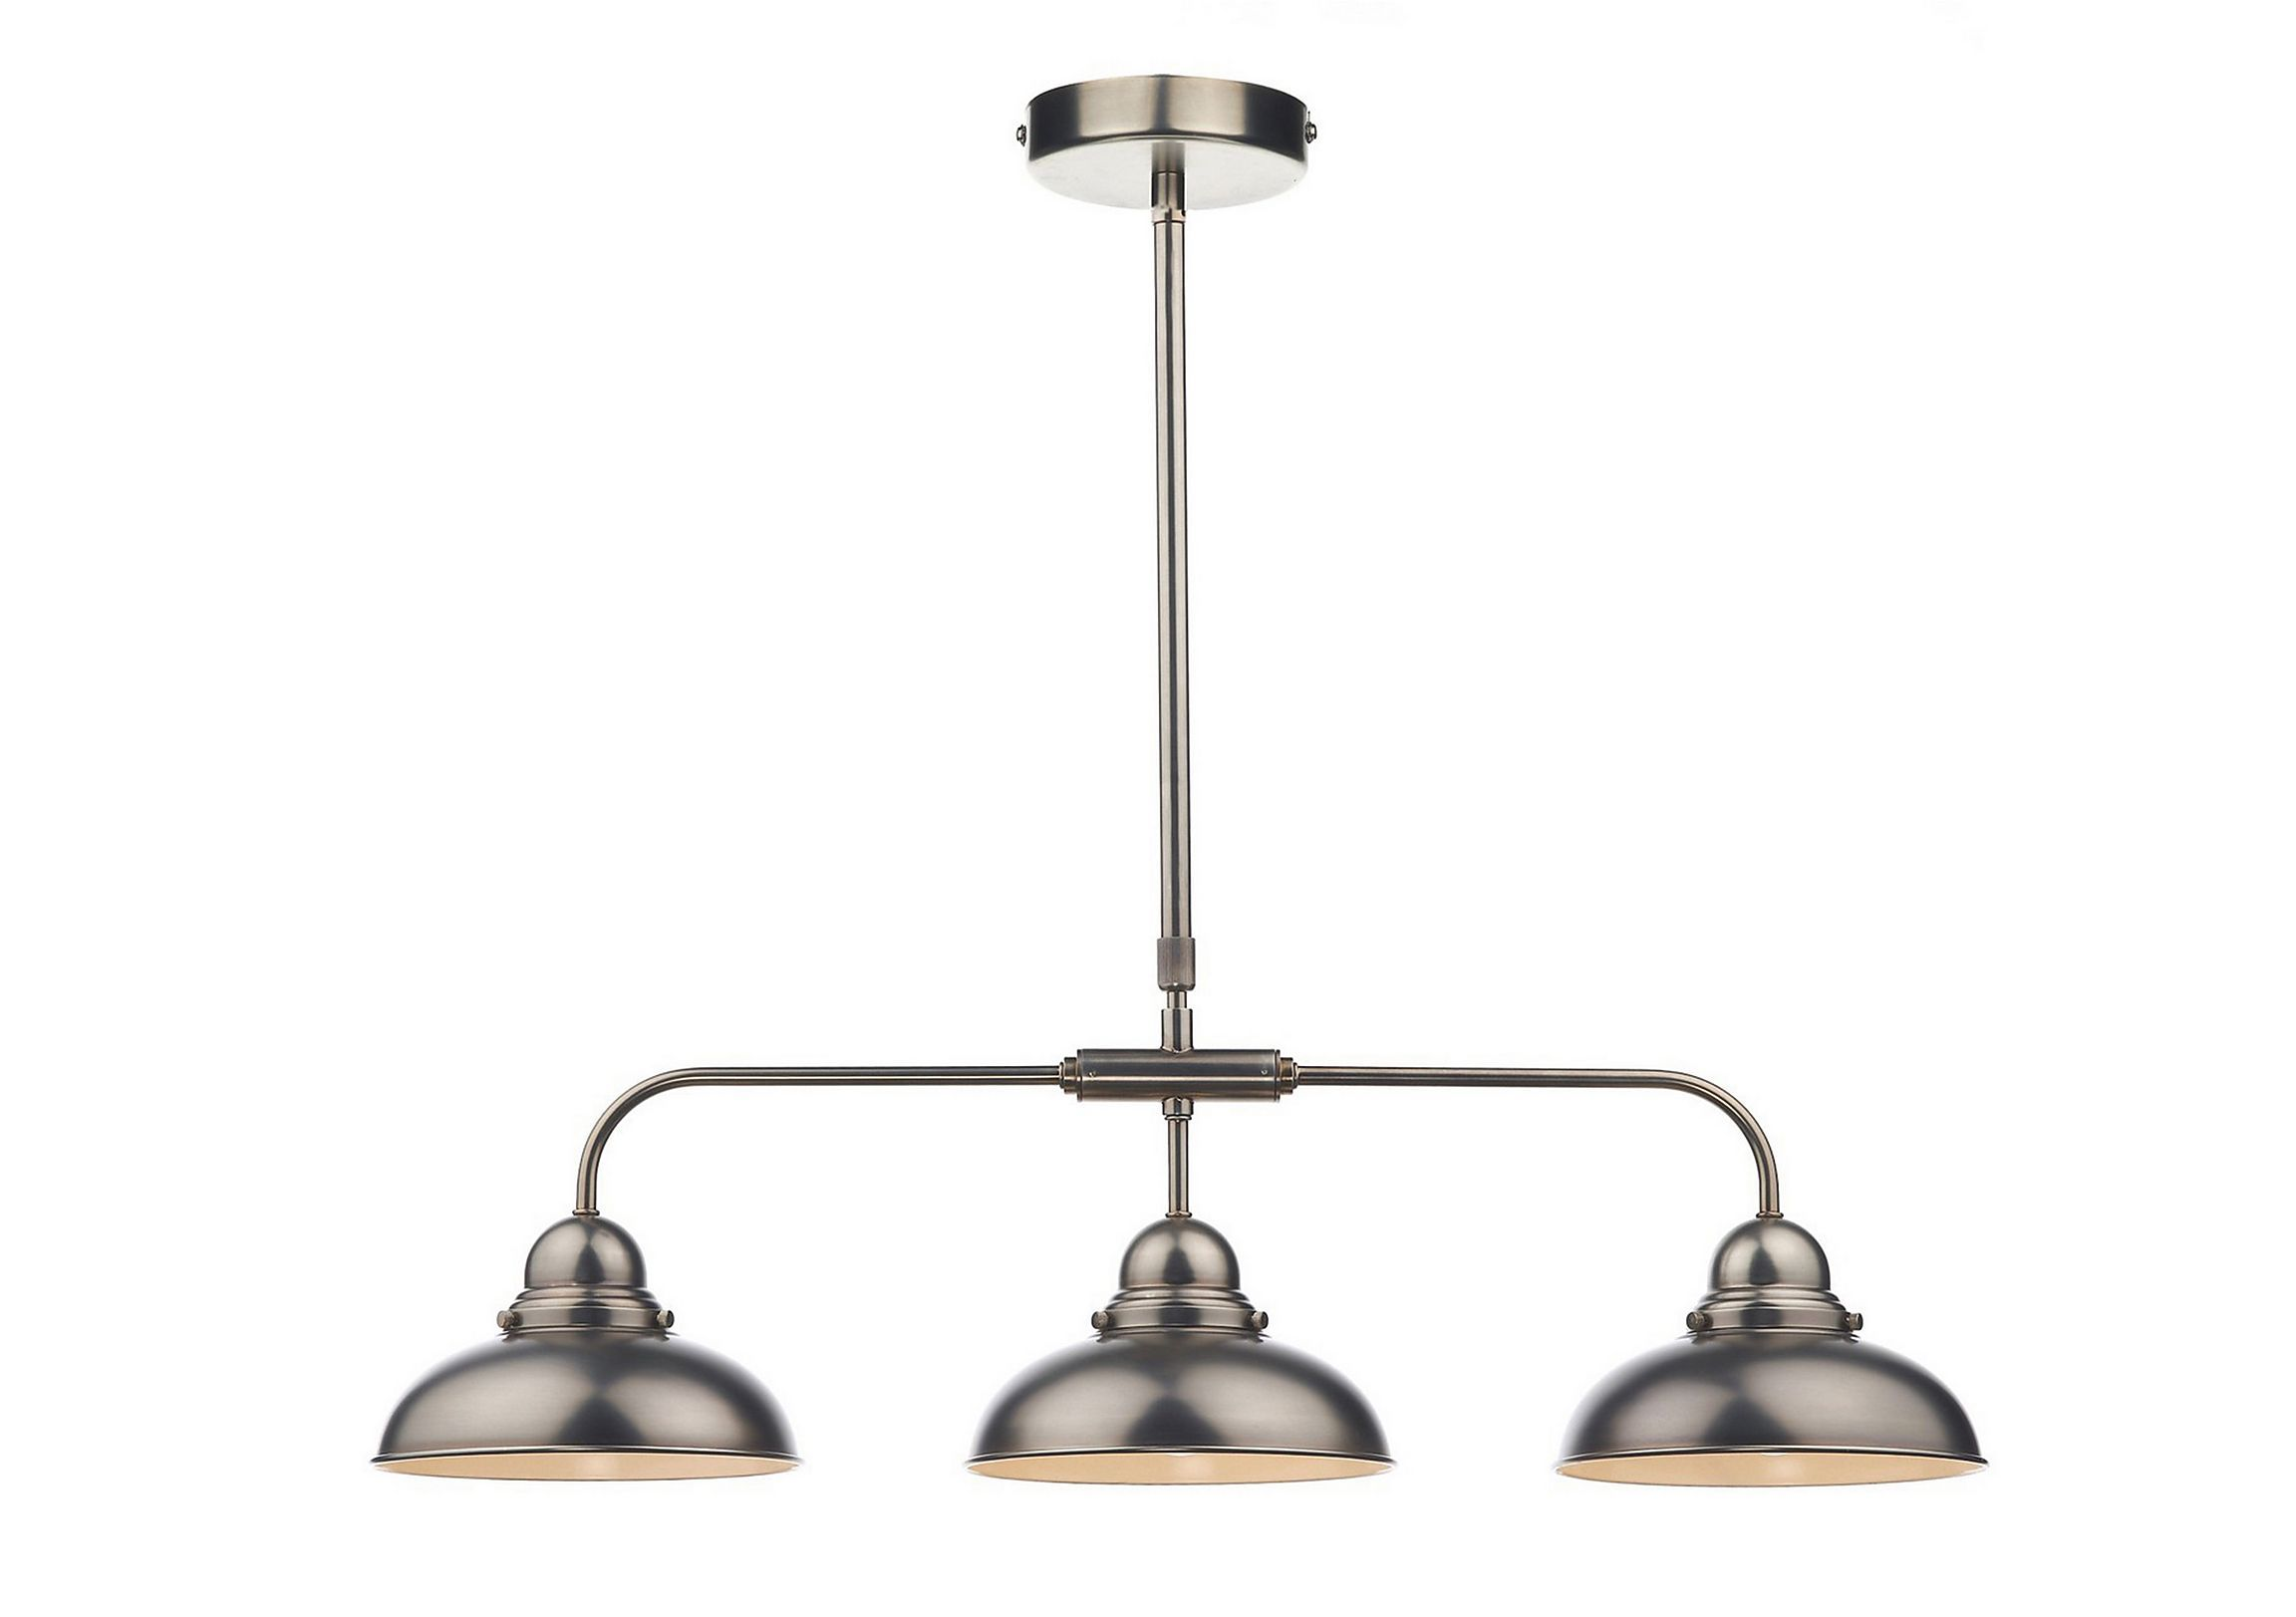 Trio of contemporary metal lights   On trend retro style shades   Polished antique chrome finish